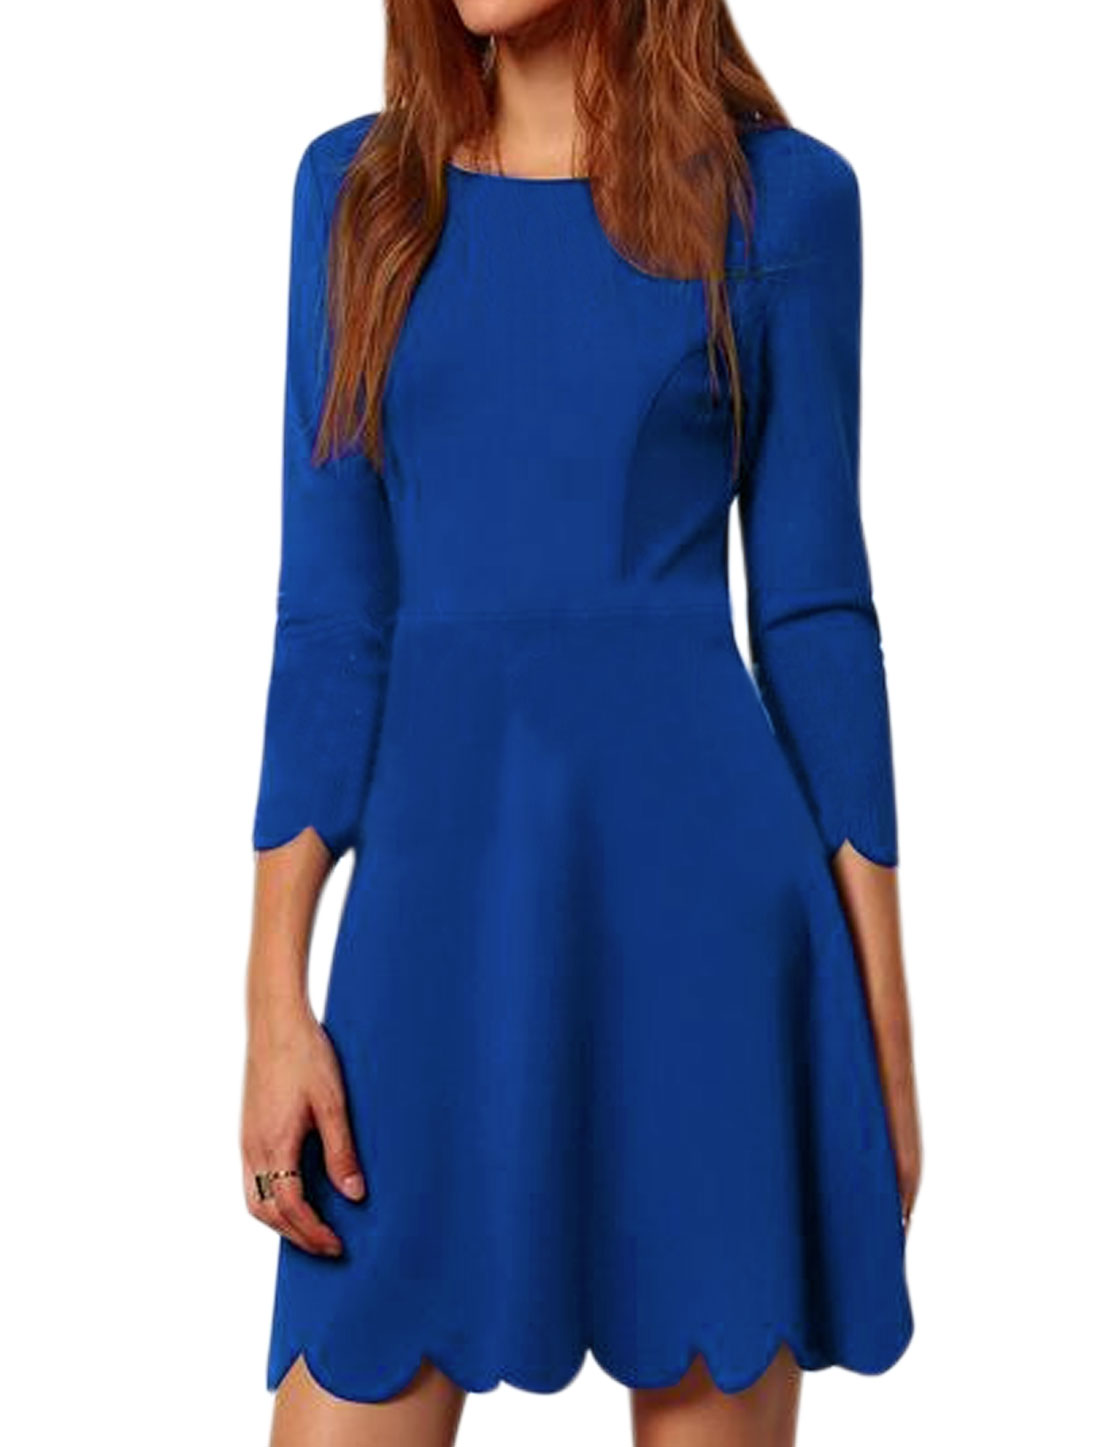 Women 3/4 Sleeves Scalloped Trim Fit and Flare Dress Blue M